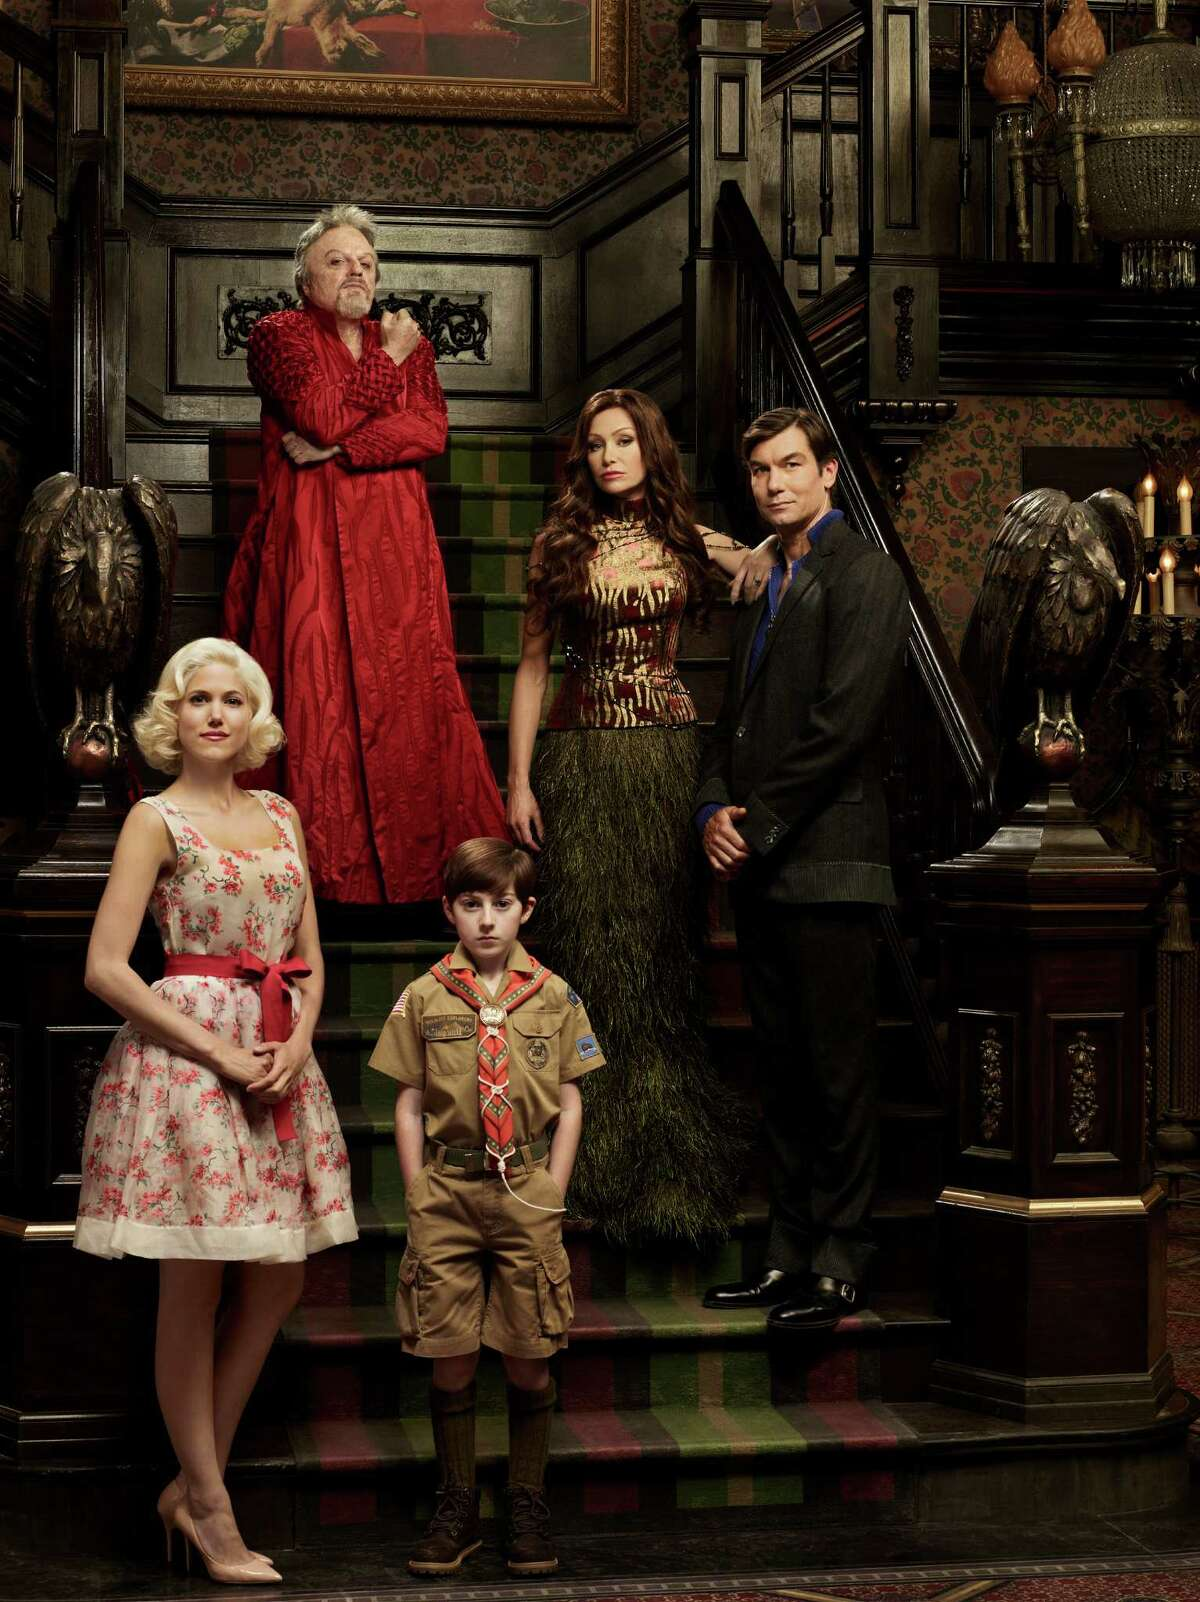 MOCKINGBIRD LANE -- Pilot -- Pictured: (l-r) Charity Wakefield as Marilyn, Eddie Izzard as Grandpa, Mason Cook as Eddie Munster, Portia De Rossi as Lily Munster, Jerry O'Connell as Herman Munster -- (Photo by: Gavin Bond/NBC)